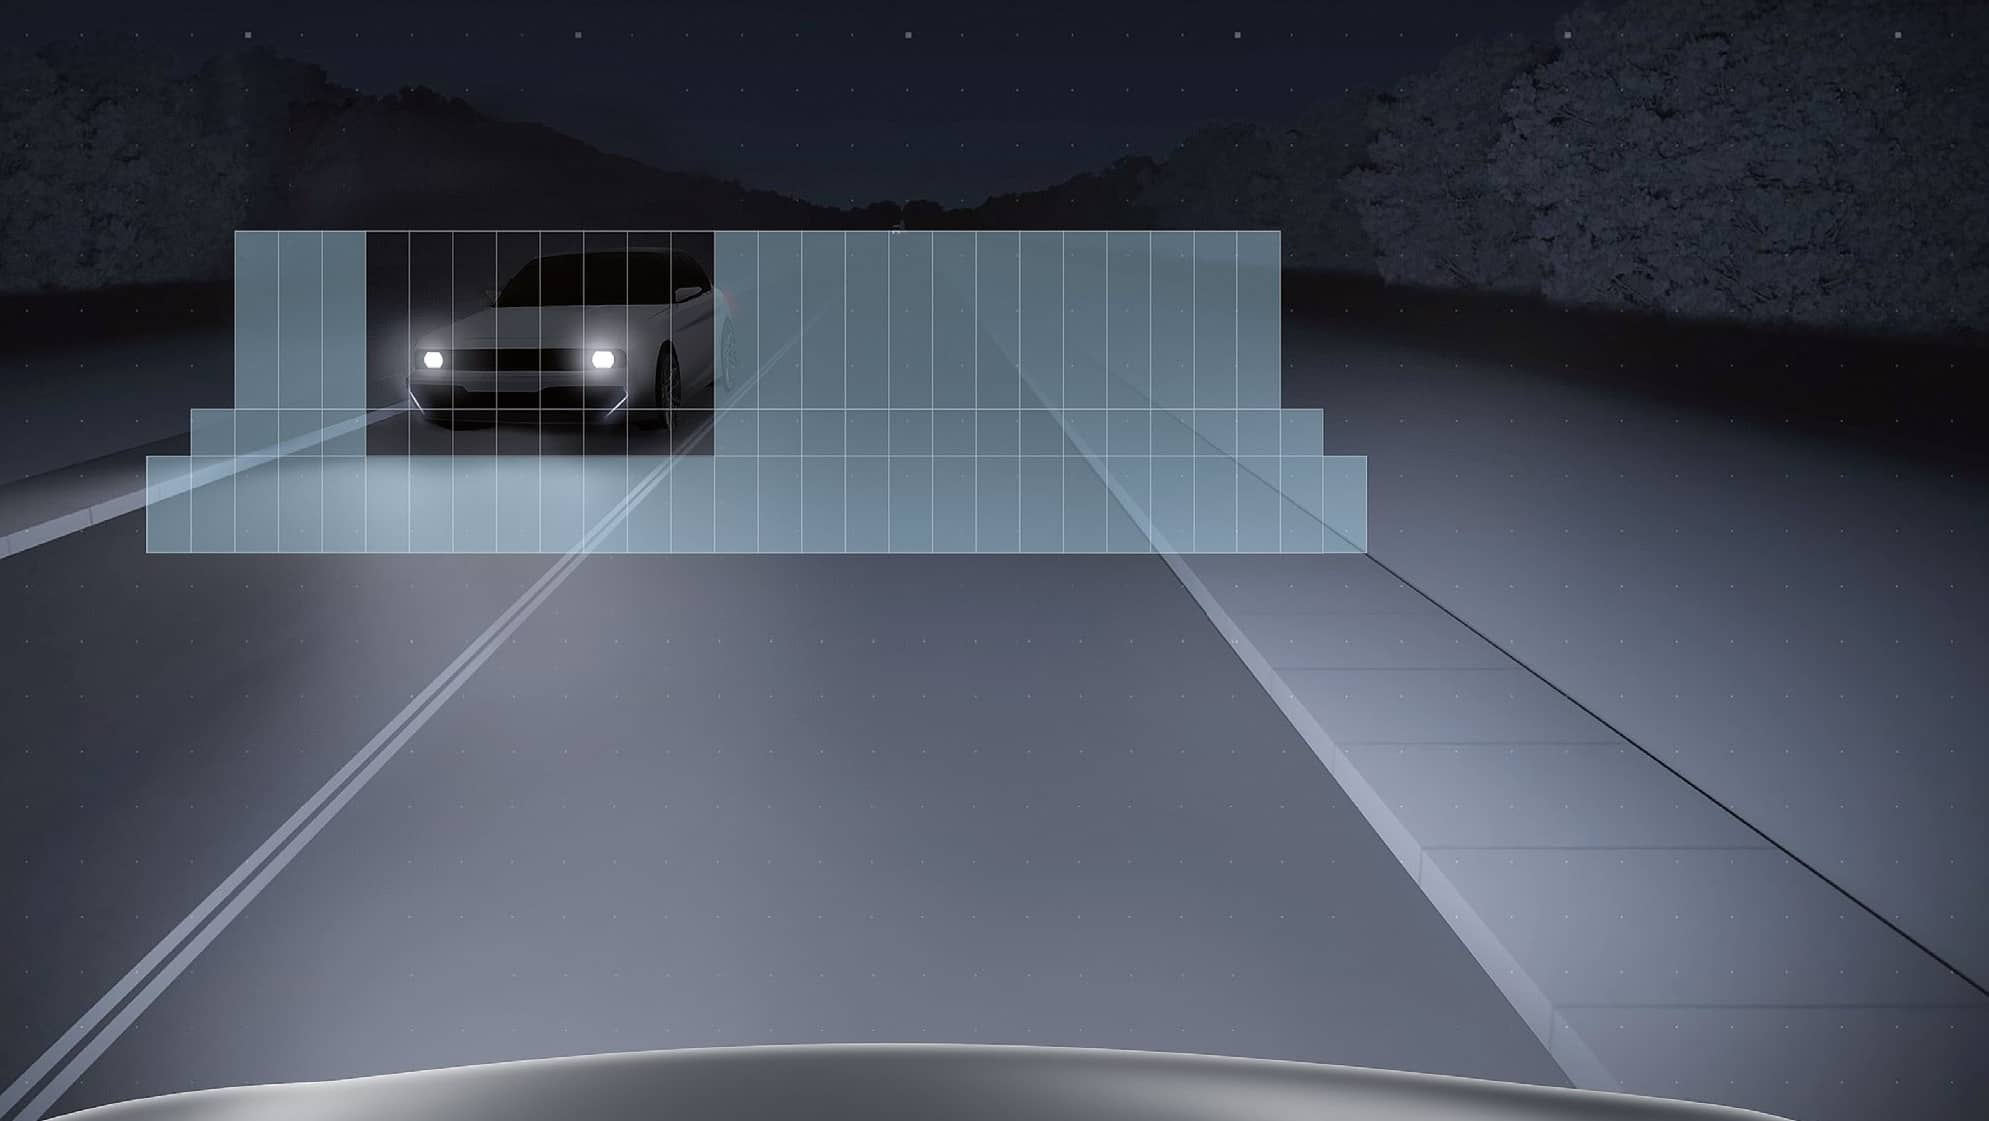 OBJECTIVE ASSESSMENT OF THE SAFETY CONTRIBUTION OF TODAY'S AUTOMOTIVE HEADLAMPS